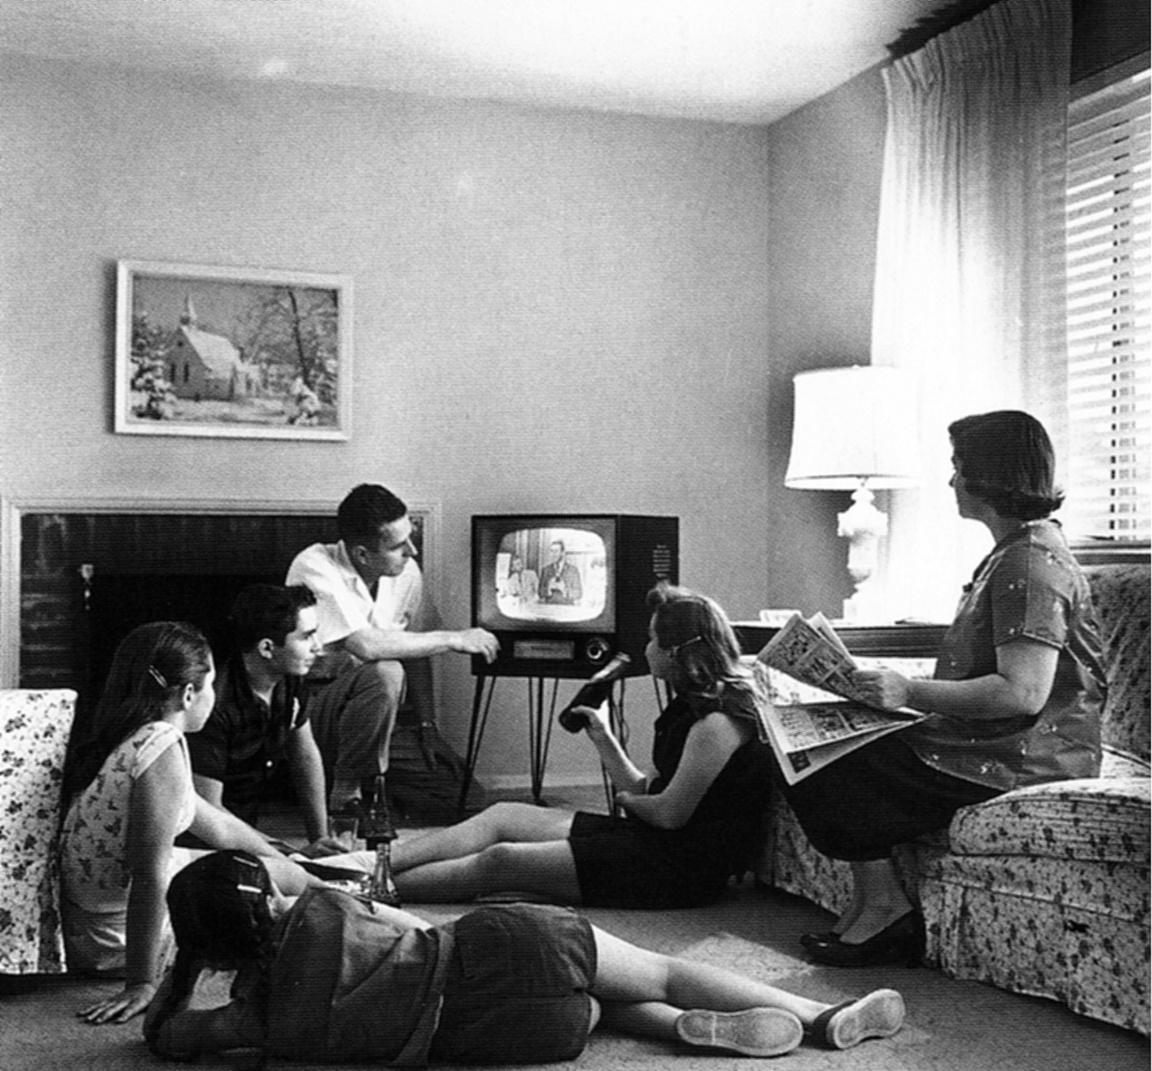 THE EYE OF FAITH ON TV- Vintage Photo of Family Watching Television - 1958